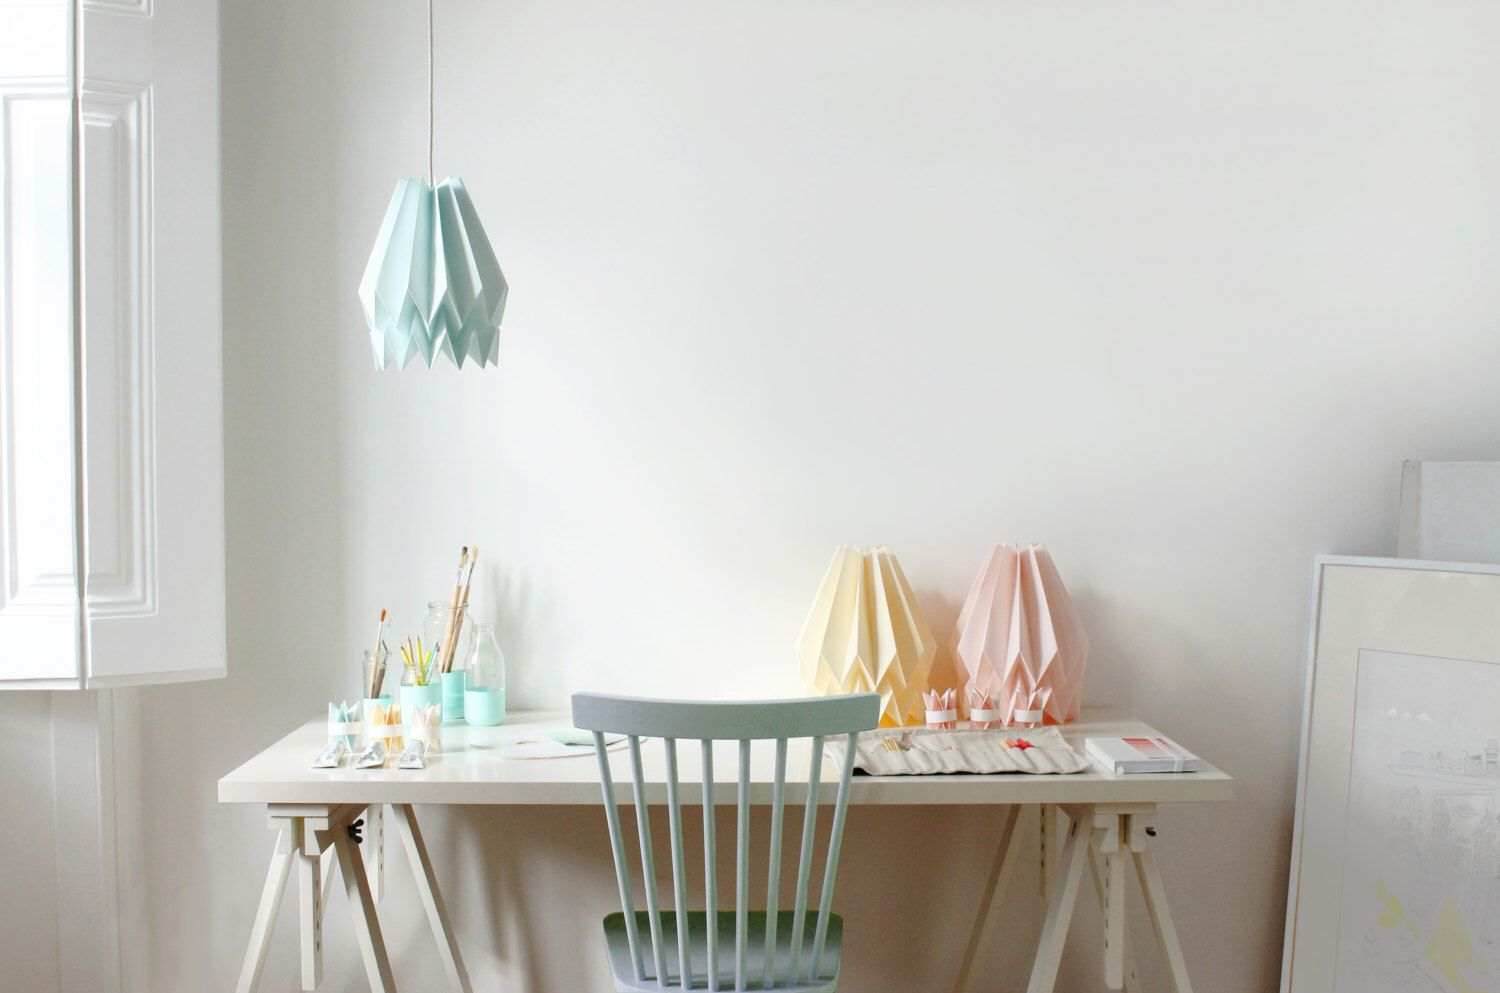 Origami Lamp | Plain Mint Blue | Design Lamp shade | FREE SHIPPING by blaanc on Etsy https://www.etsy.com/listing/169099402/origami-lamp-plain-mint-blue-design-lamp